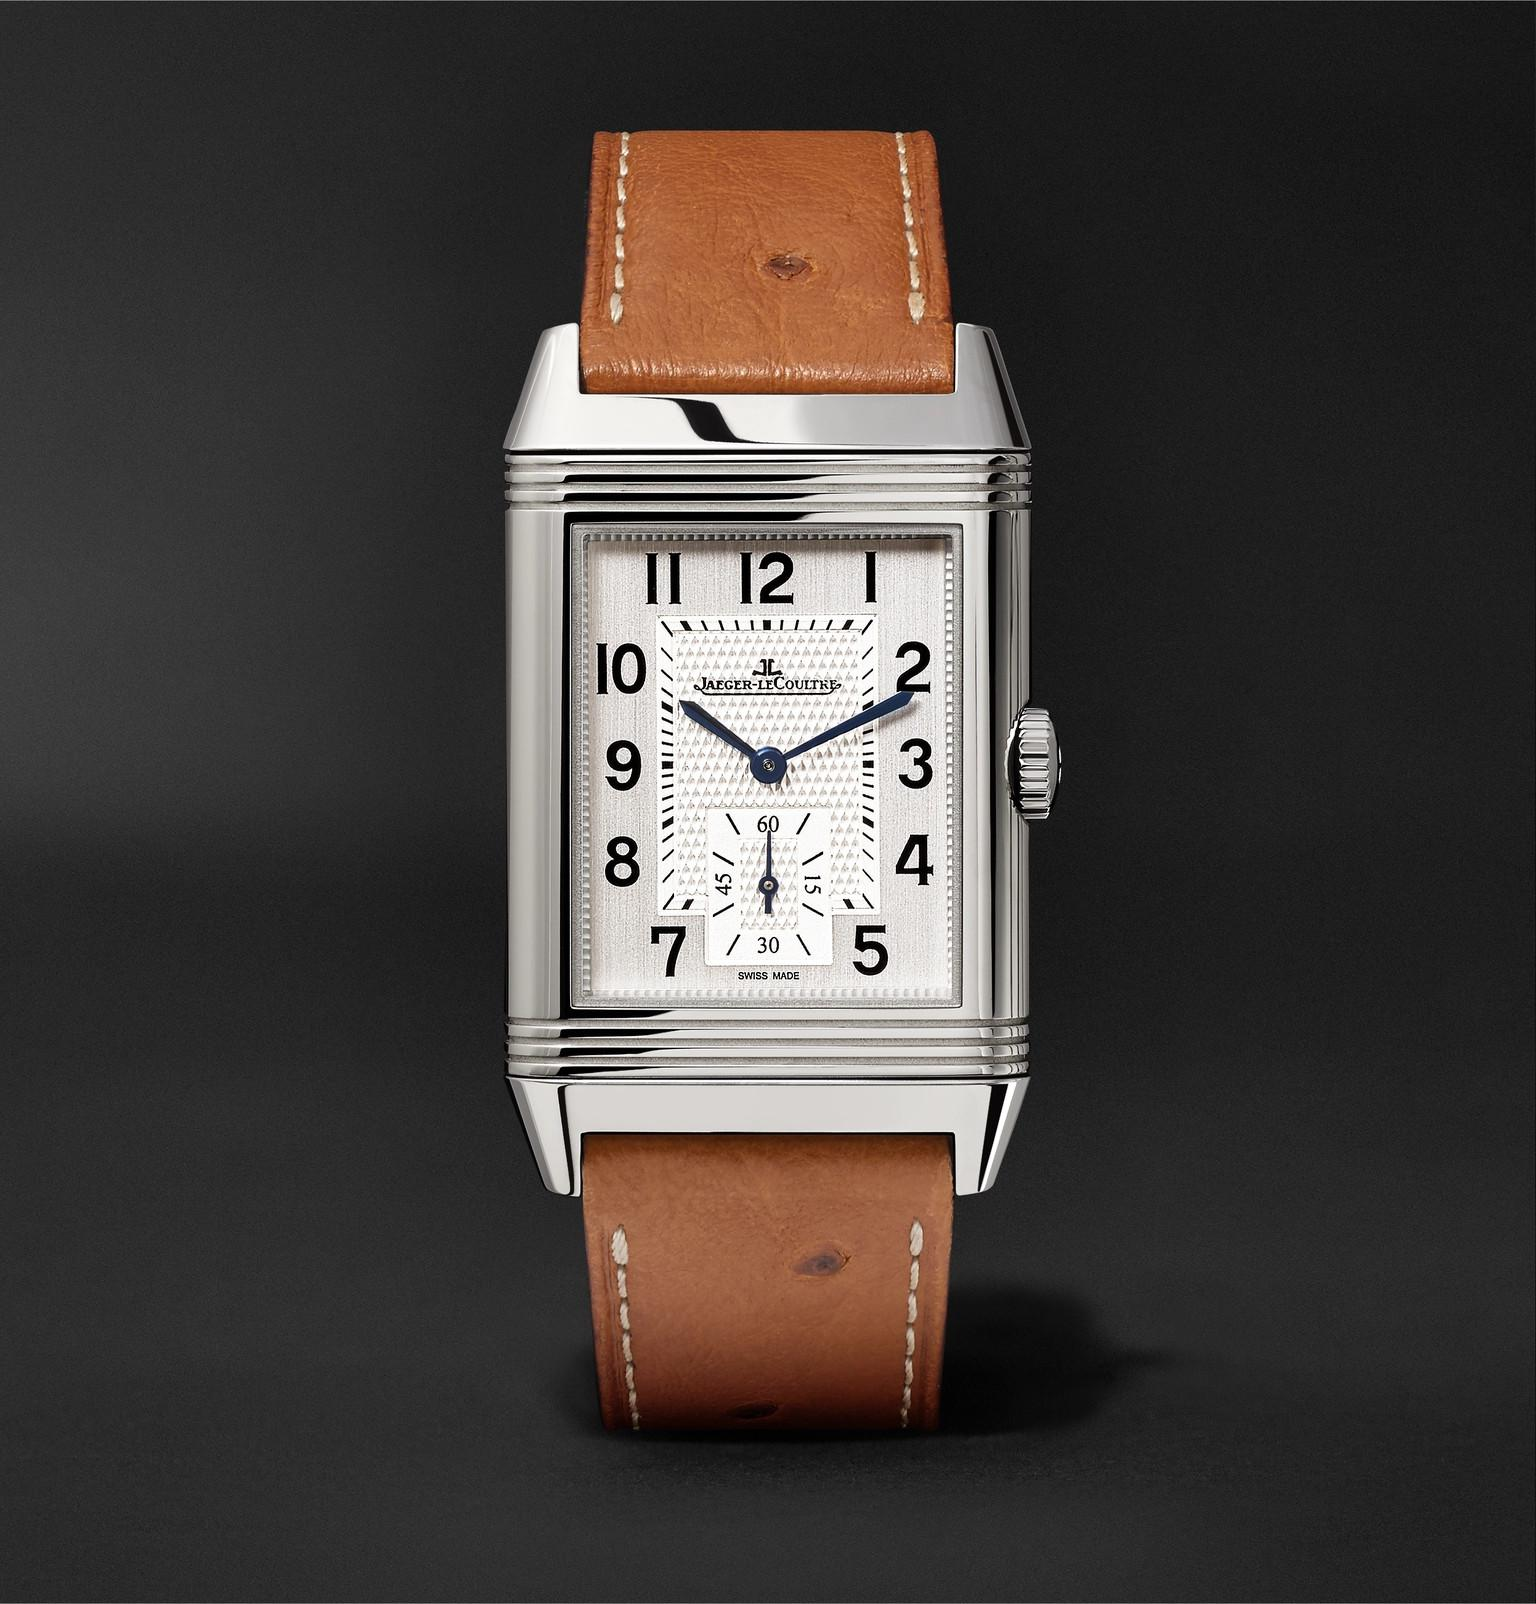 f8fa1a46ced Lyst - Jaeger-lecoultre Reverso Classic Large 27mm Stainless Steel ...